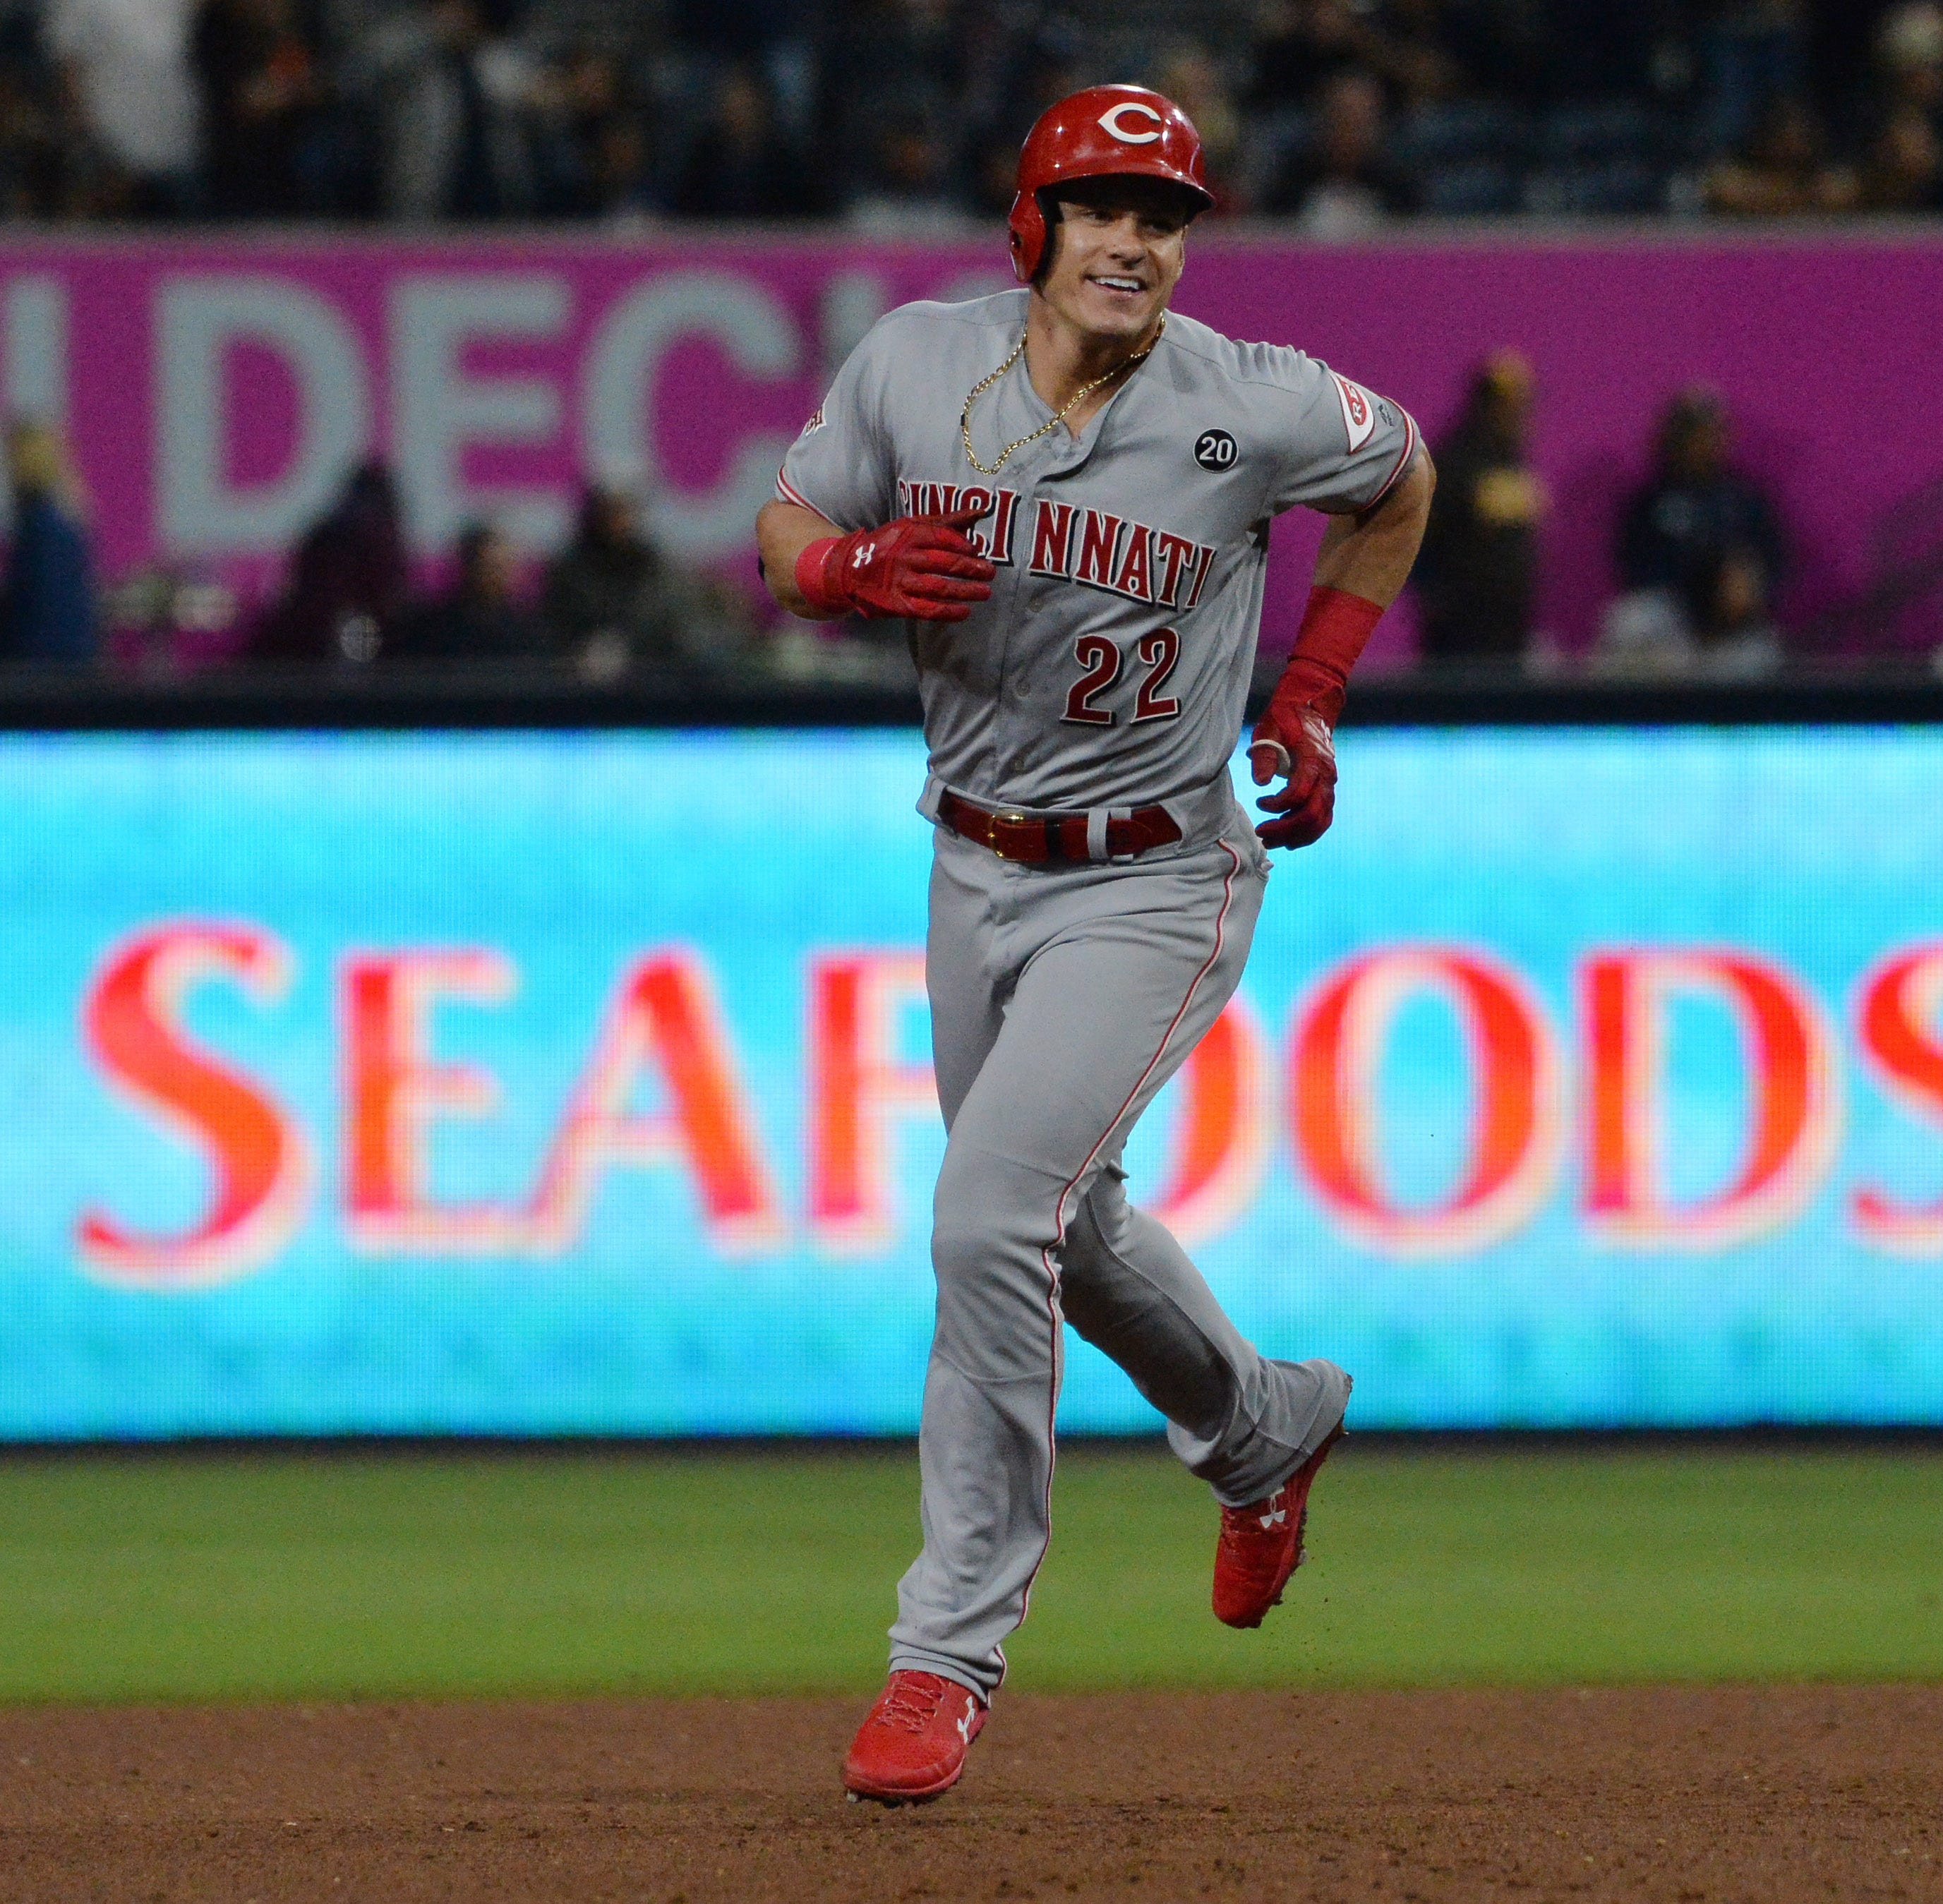 Derek Dietrich clobbers homer to lift Cincinnati Reds to win over Padres in extra innings